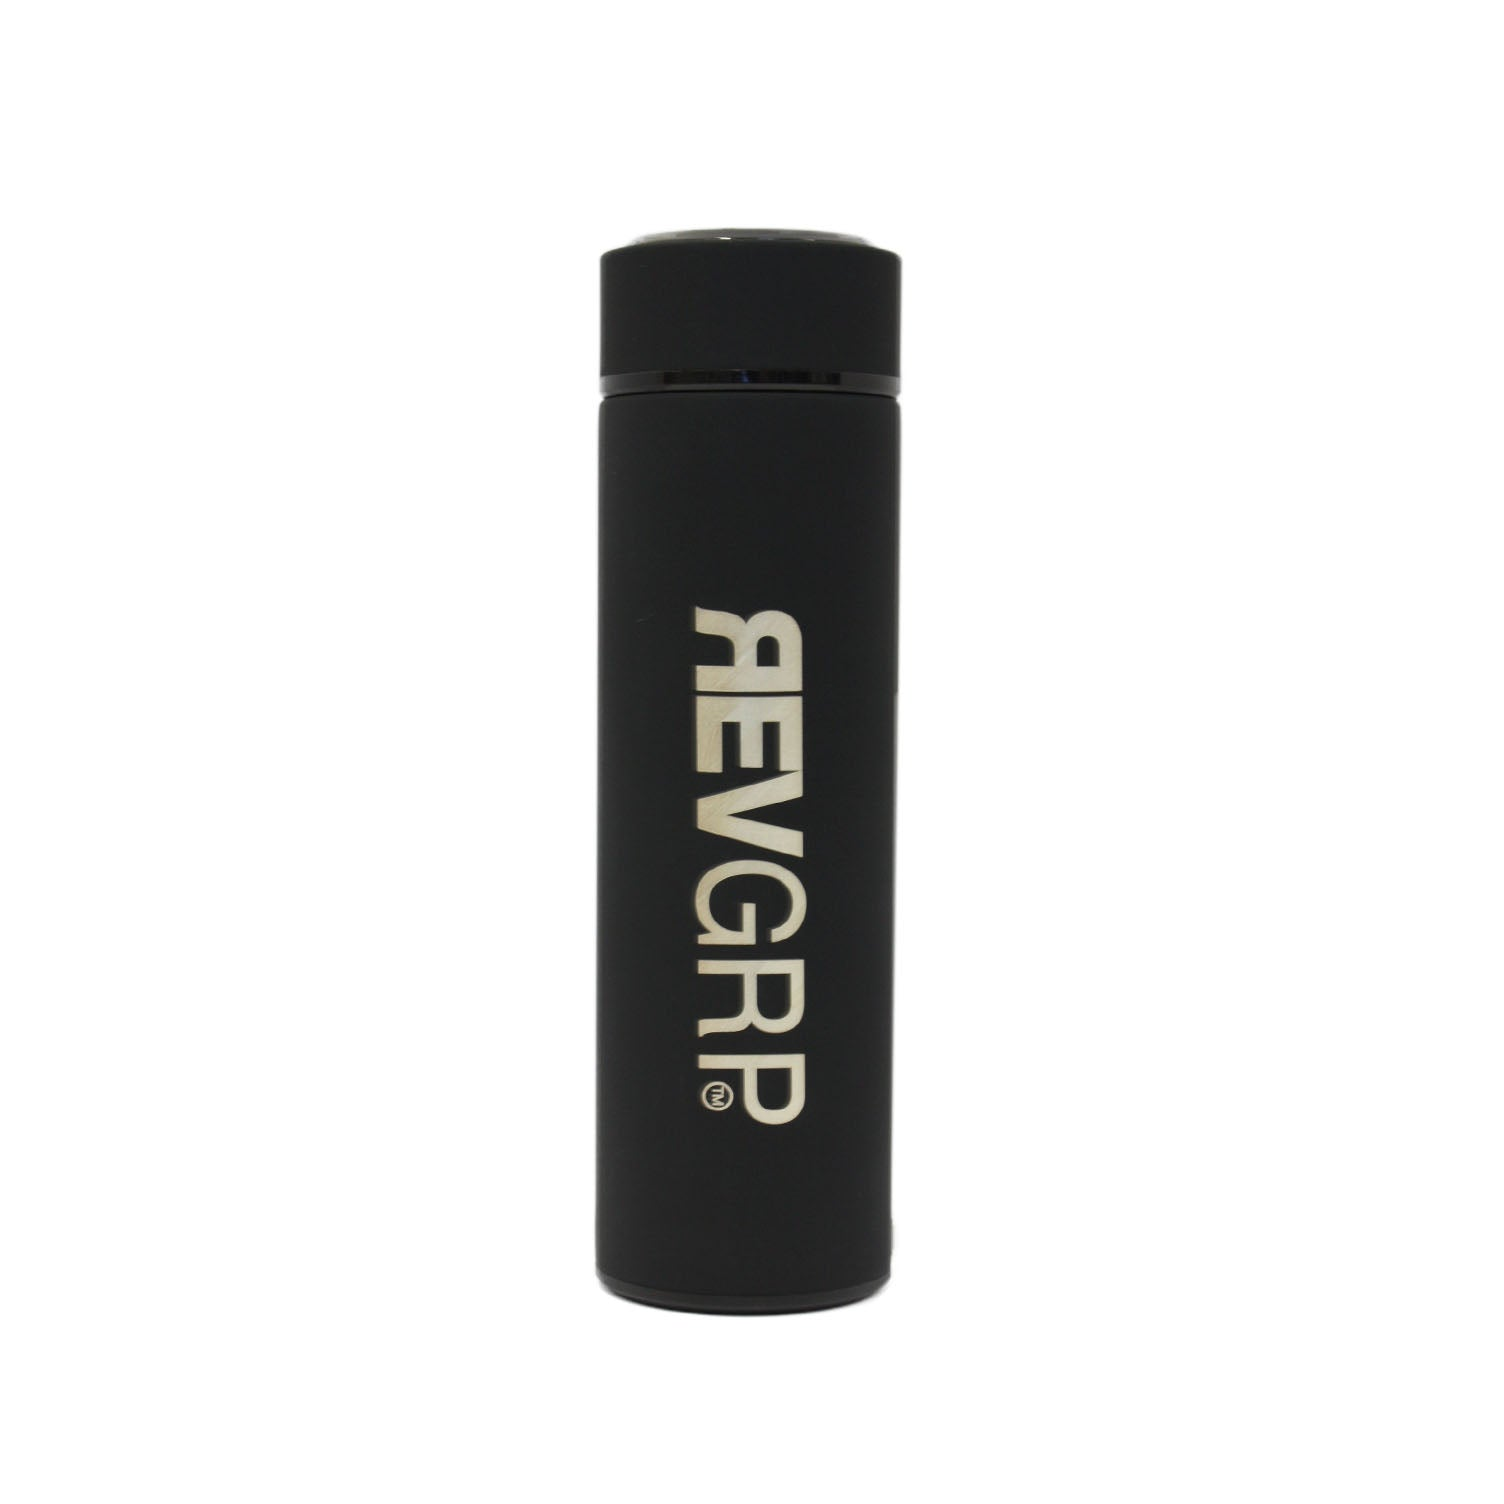 Black REVMAN Flask